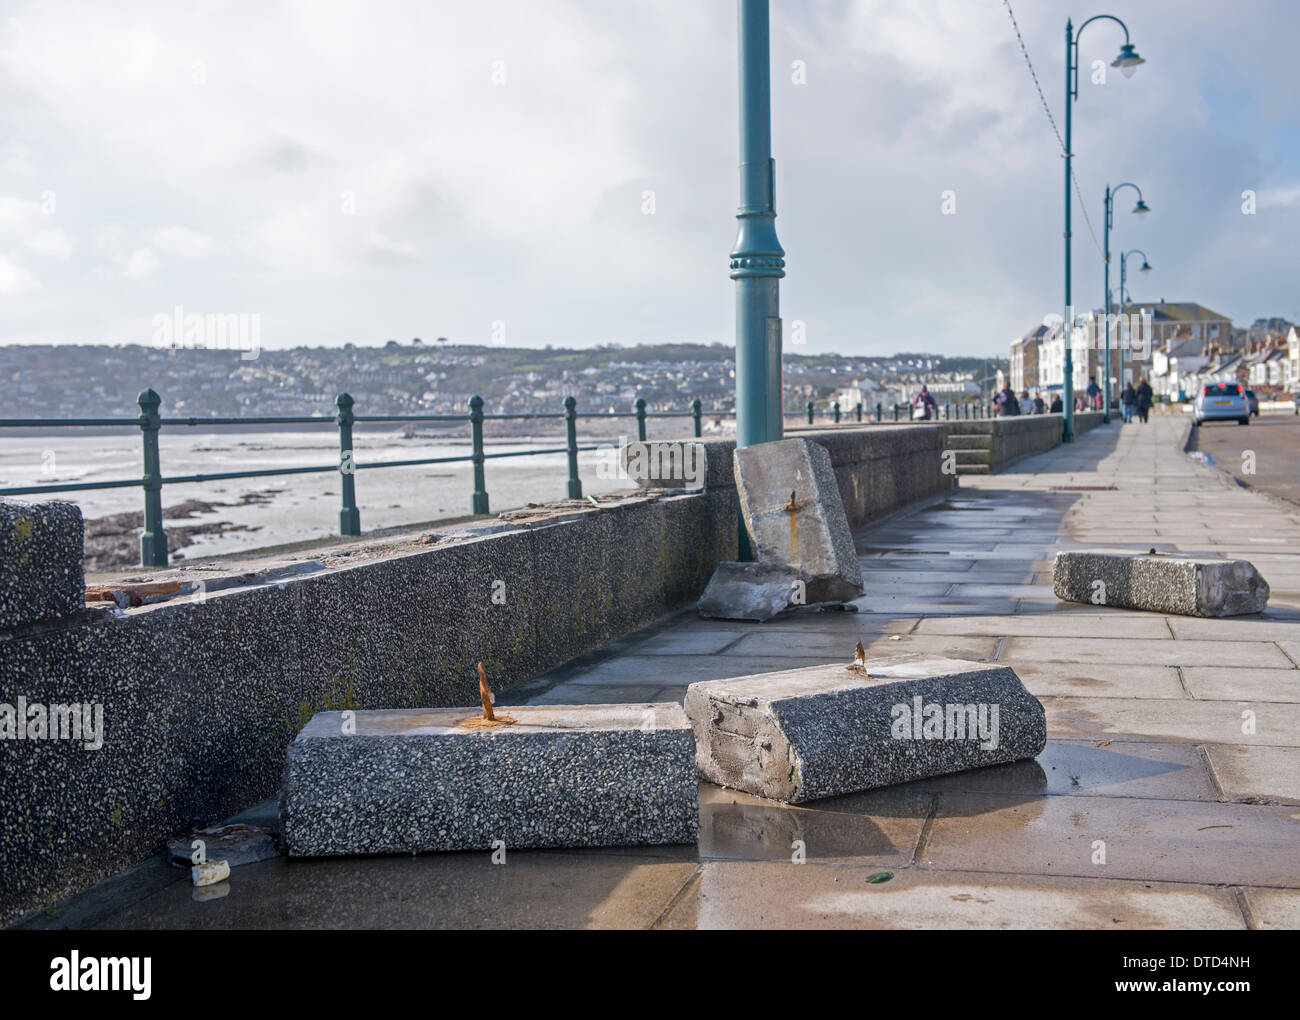 Significant damage caused to Penzance/Newlyn by a Valentines day storm the previous evening - Stock Image